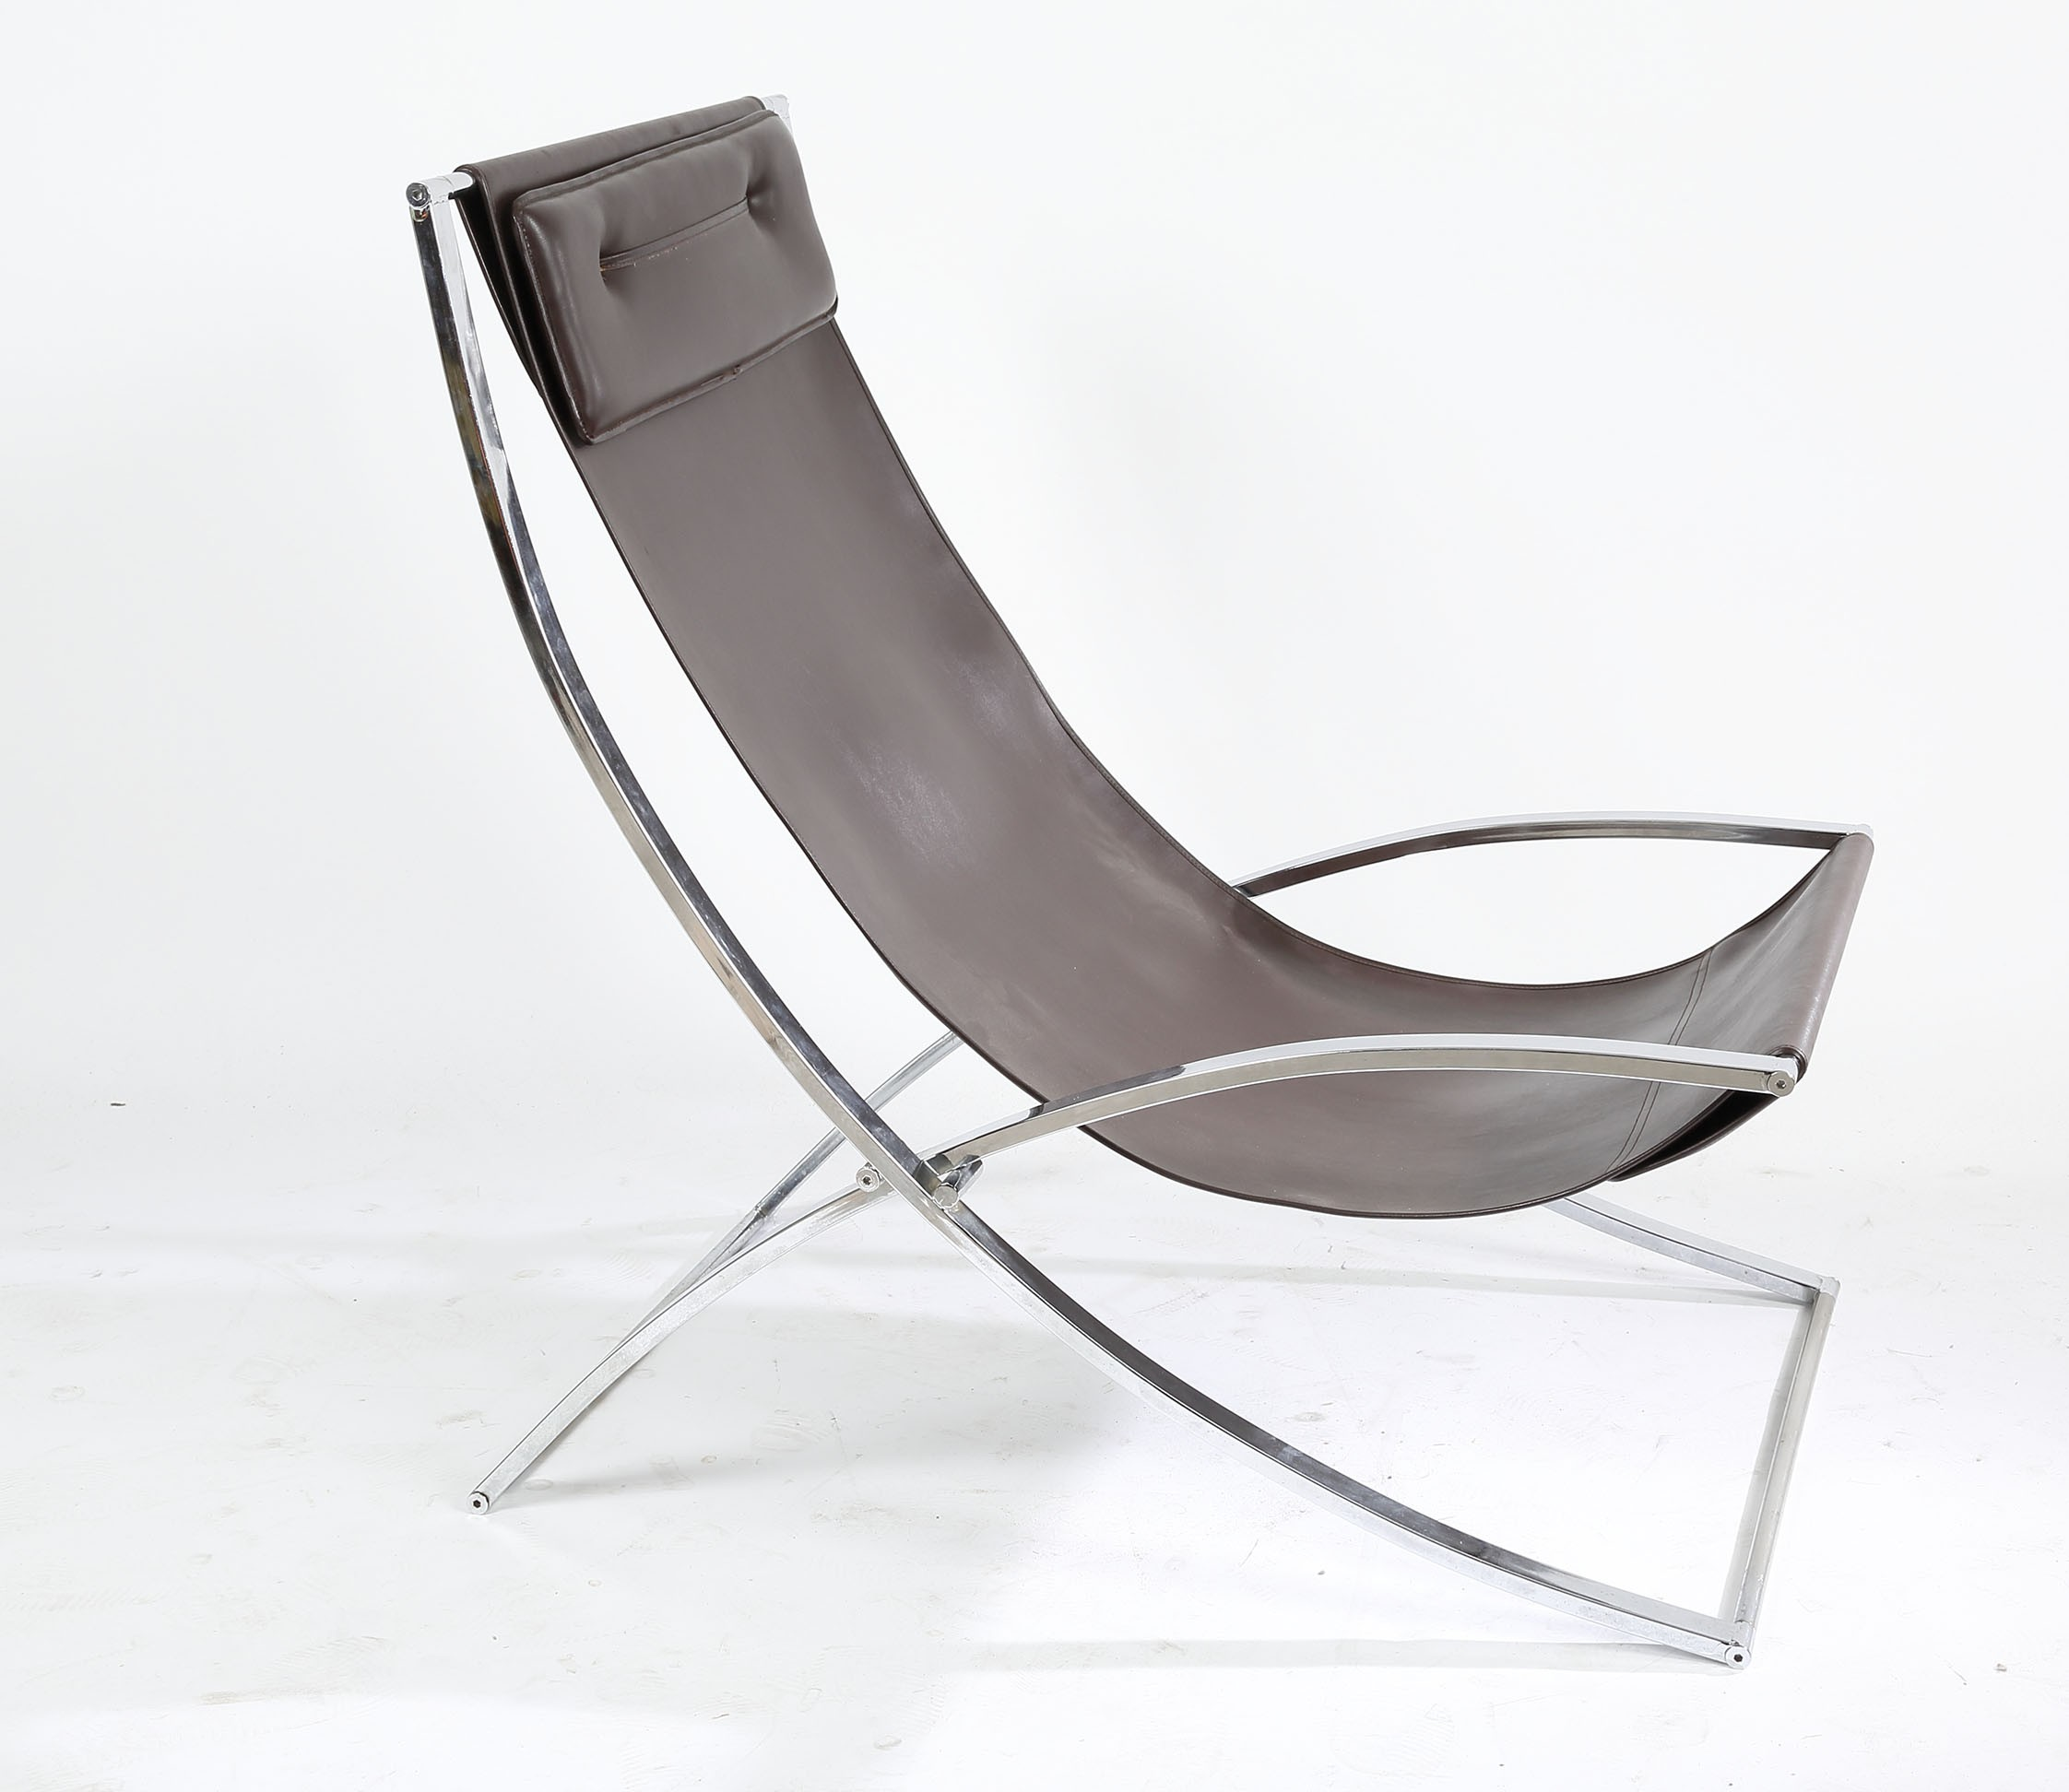 Chaise Longue Luisa in chrome metal, Marcell CUNEO - 1970s - Design ...